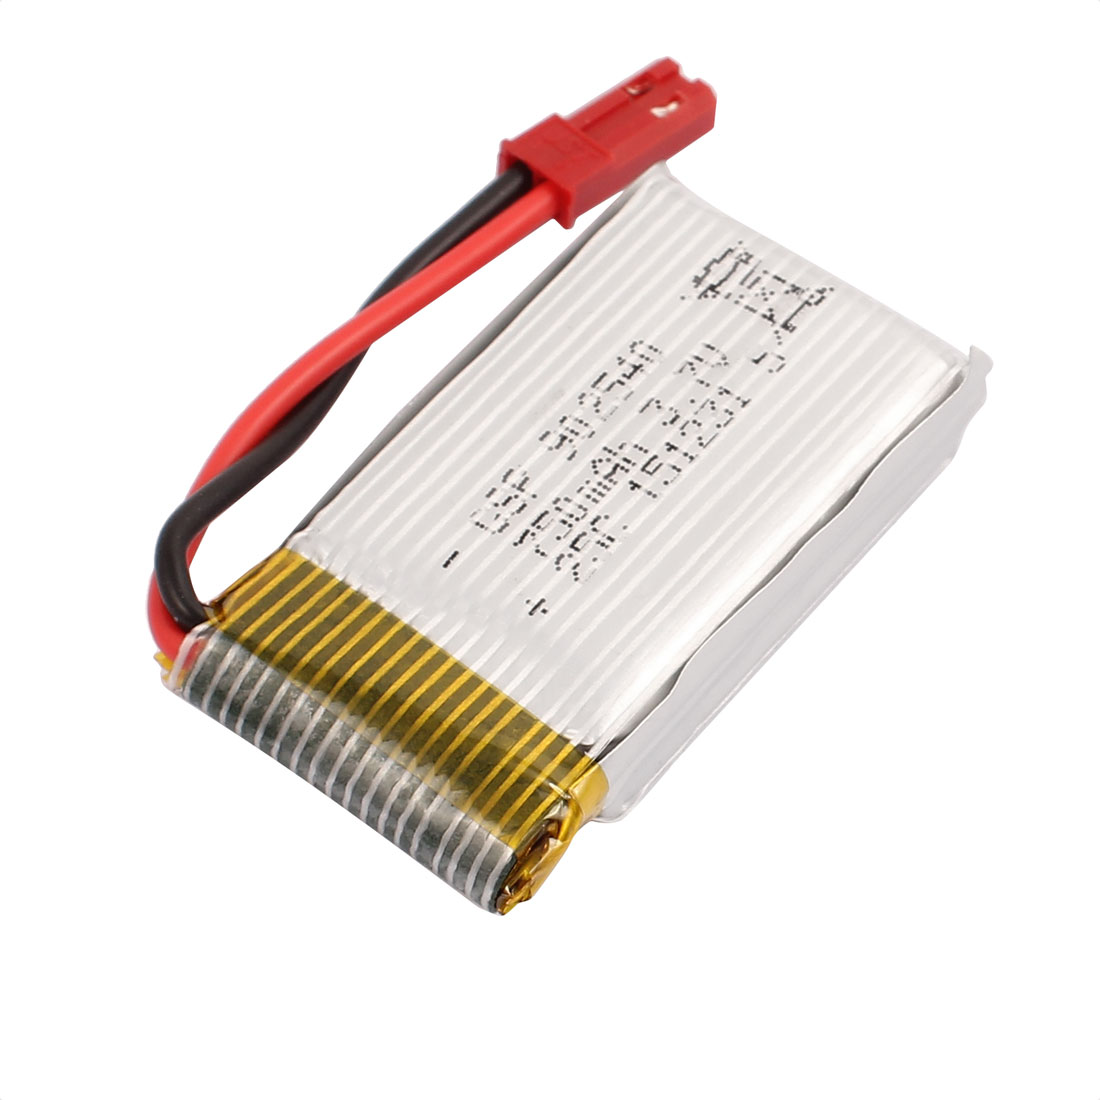 3.7V 750mAh Charging Lithium Polymer Li-po Battery JST-2P Connector for RC Airplane Aircraft